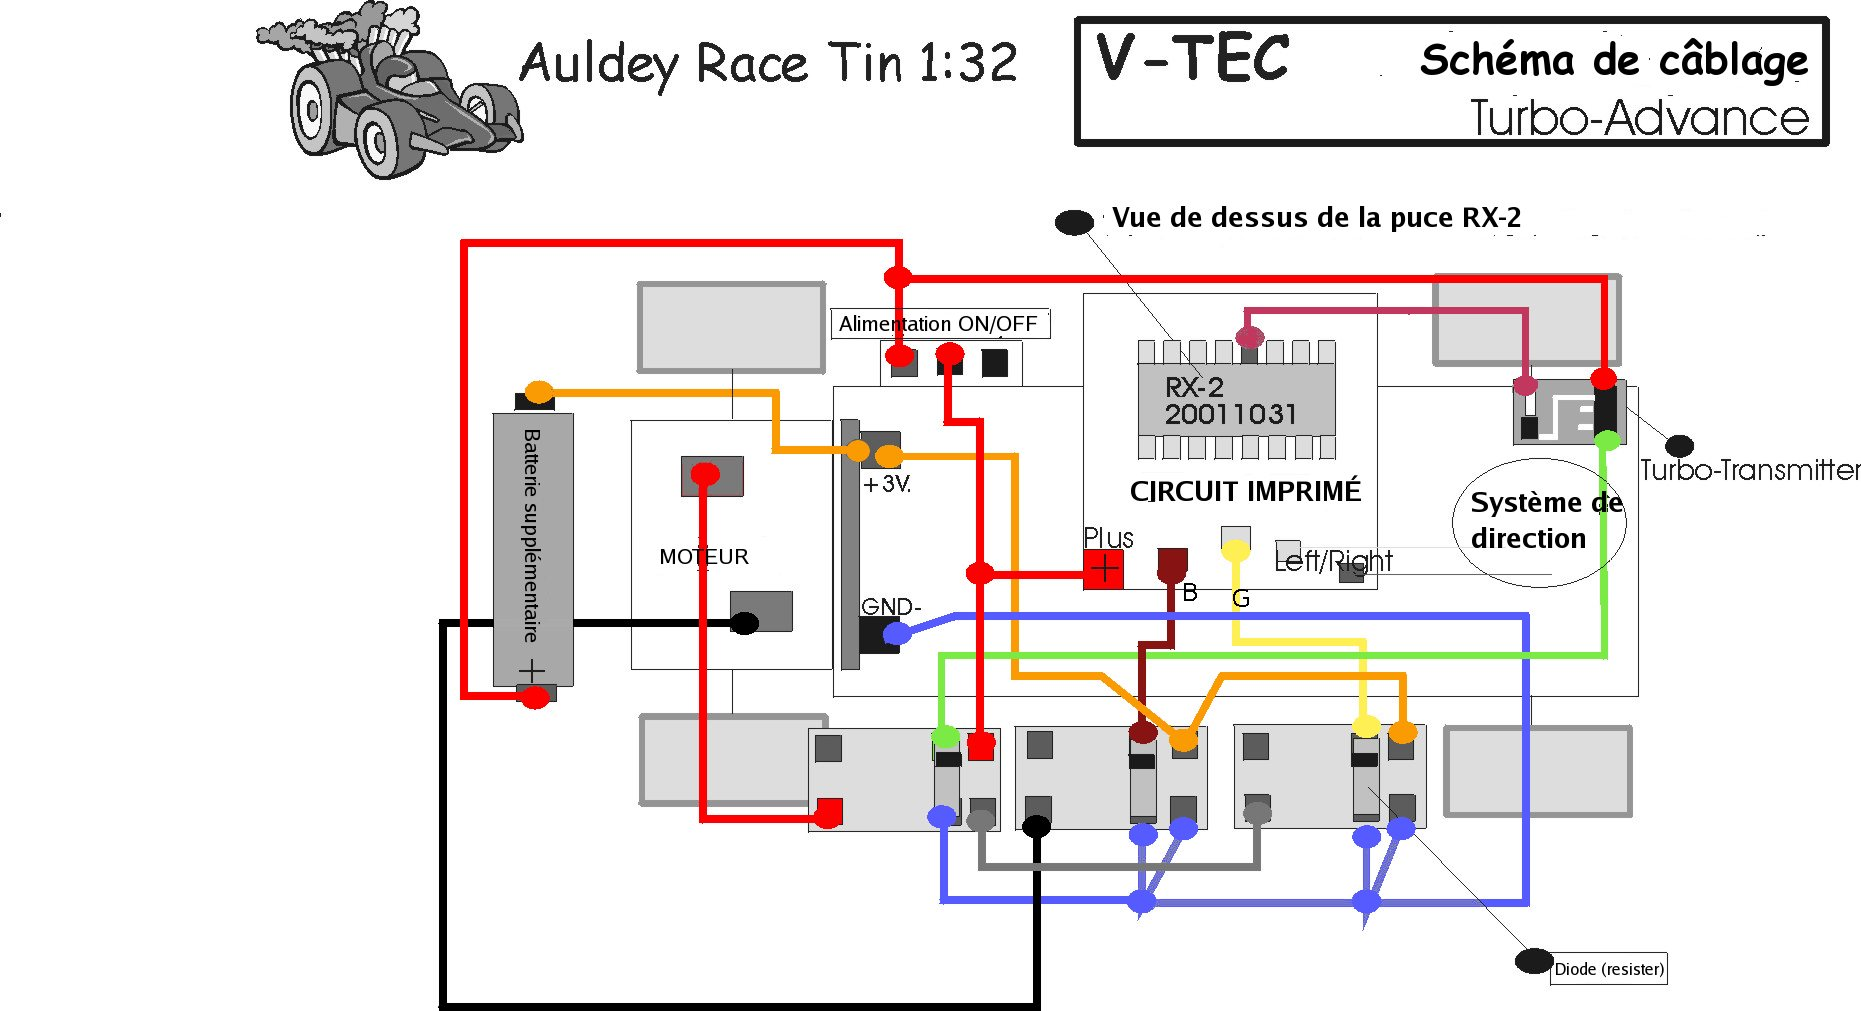 vtec_turbo d15b vtec wiring diagram sensor diagram, speed diagram, honda vtec wiring diagram at reclaimingppi.co